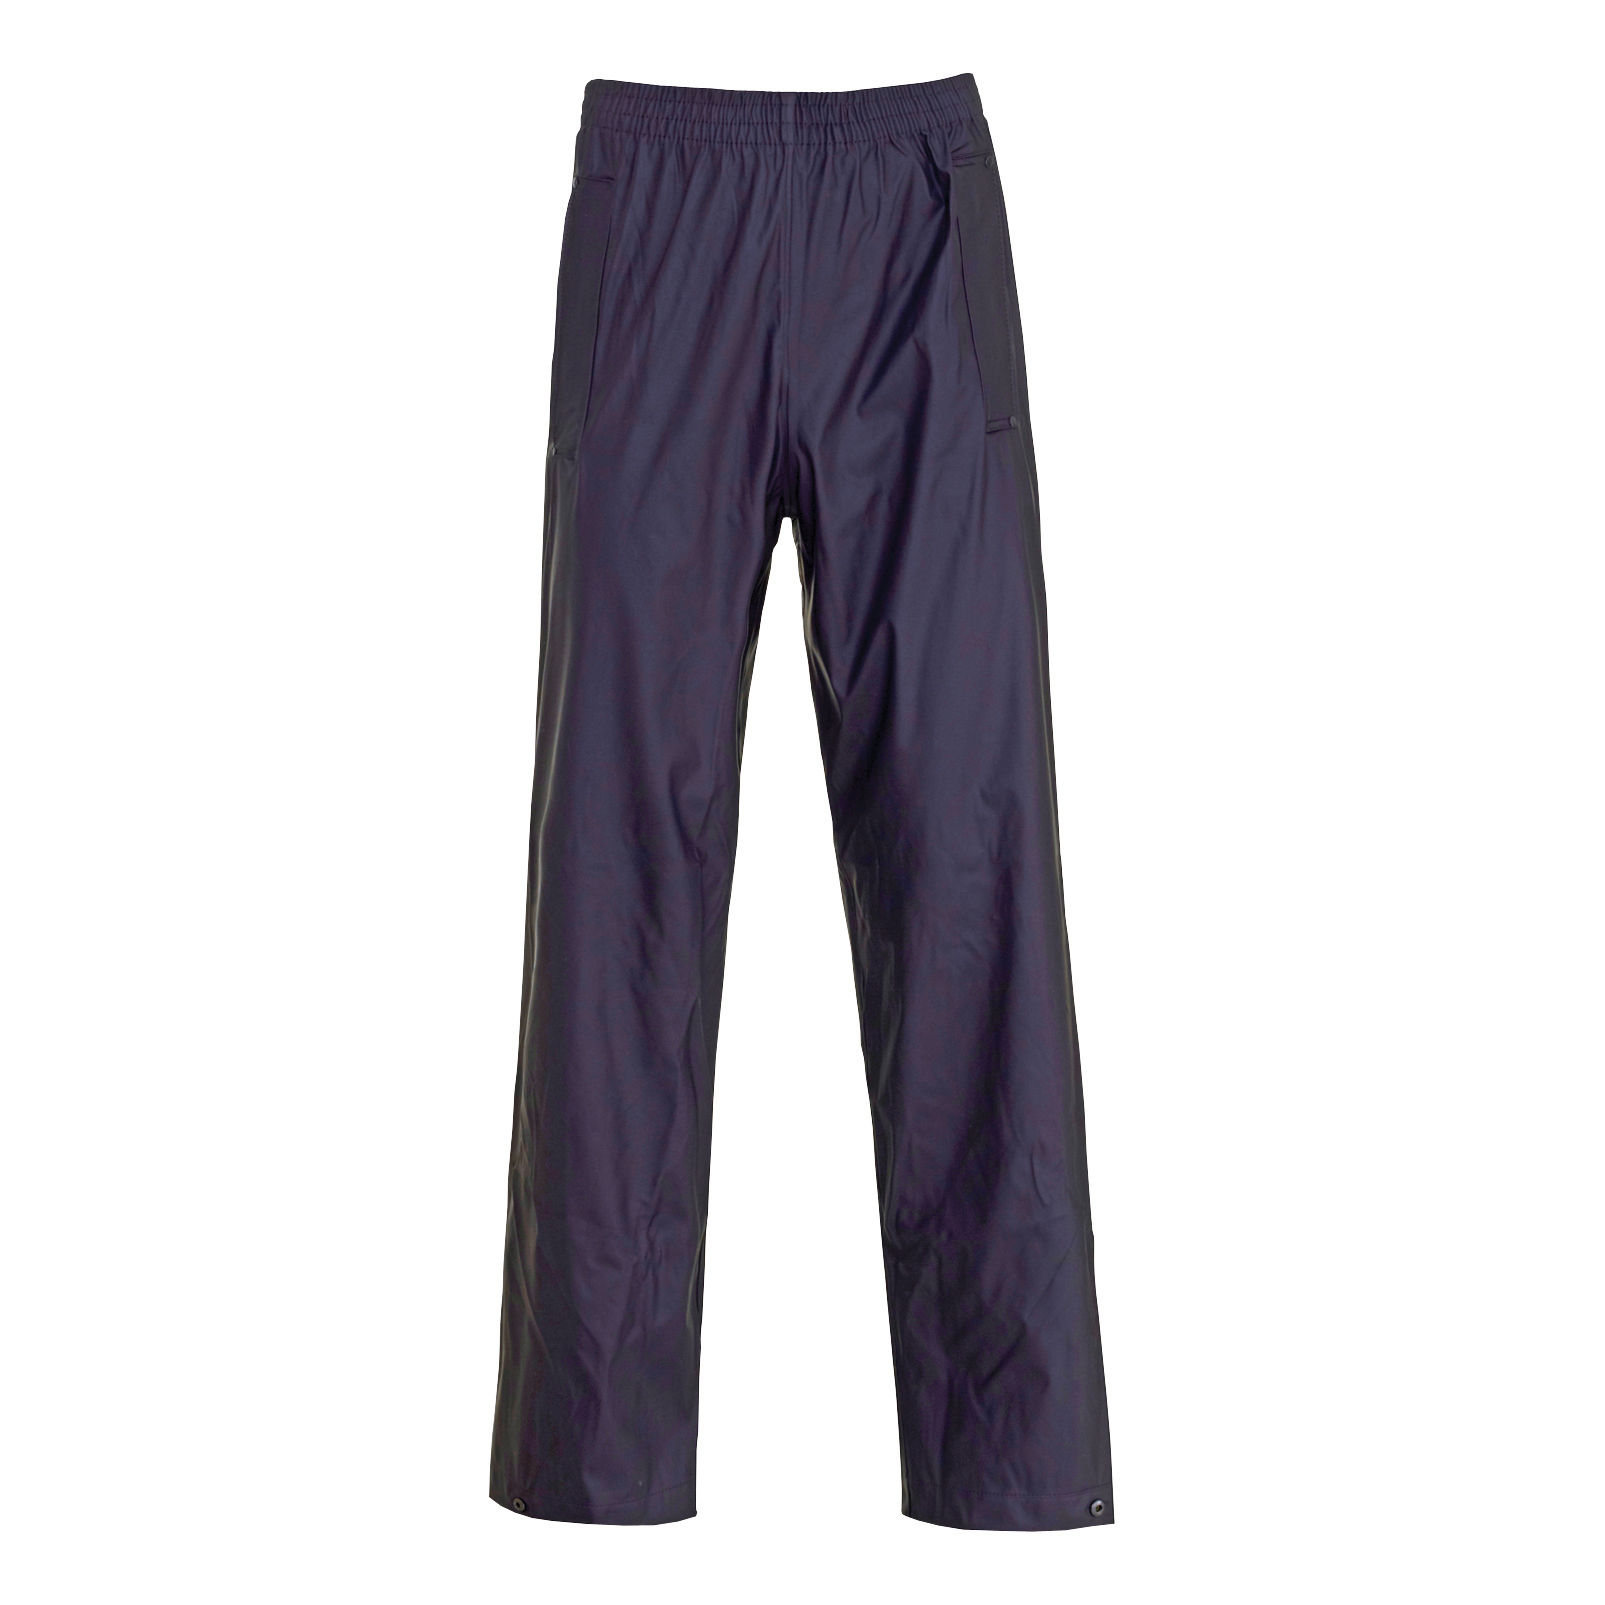 B-Dri Weatherproof Super Trousers Extra Large Navy Blue Ref SBDTNXL *Approx 3 Day Leadtime*